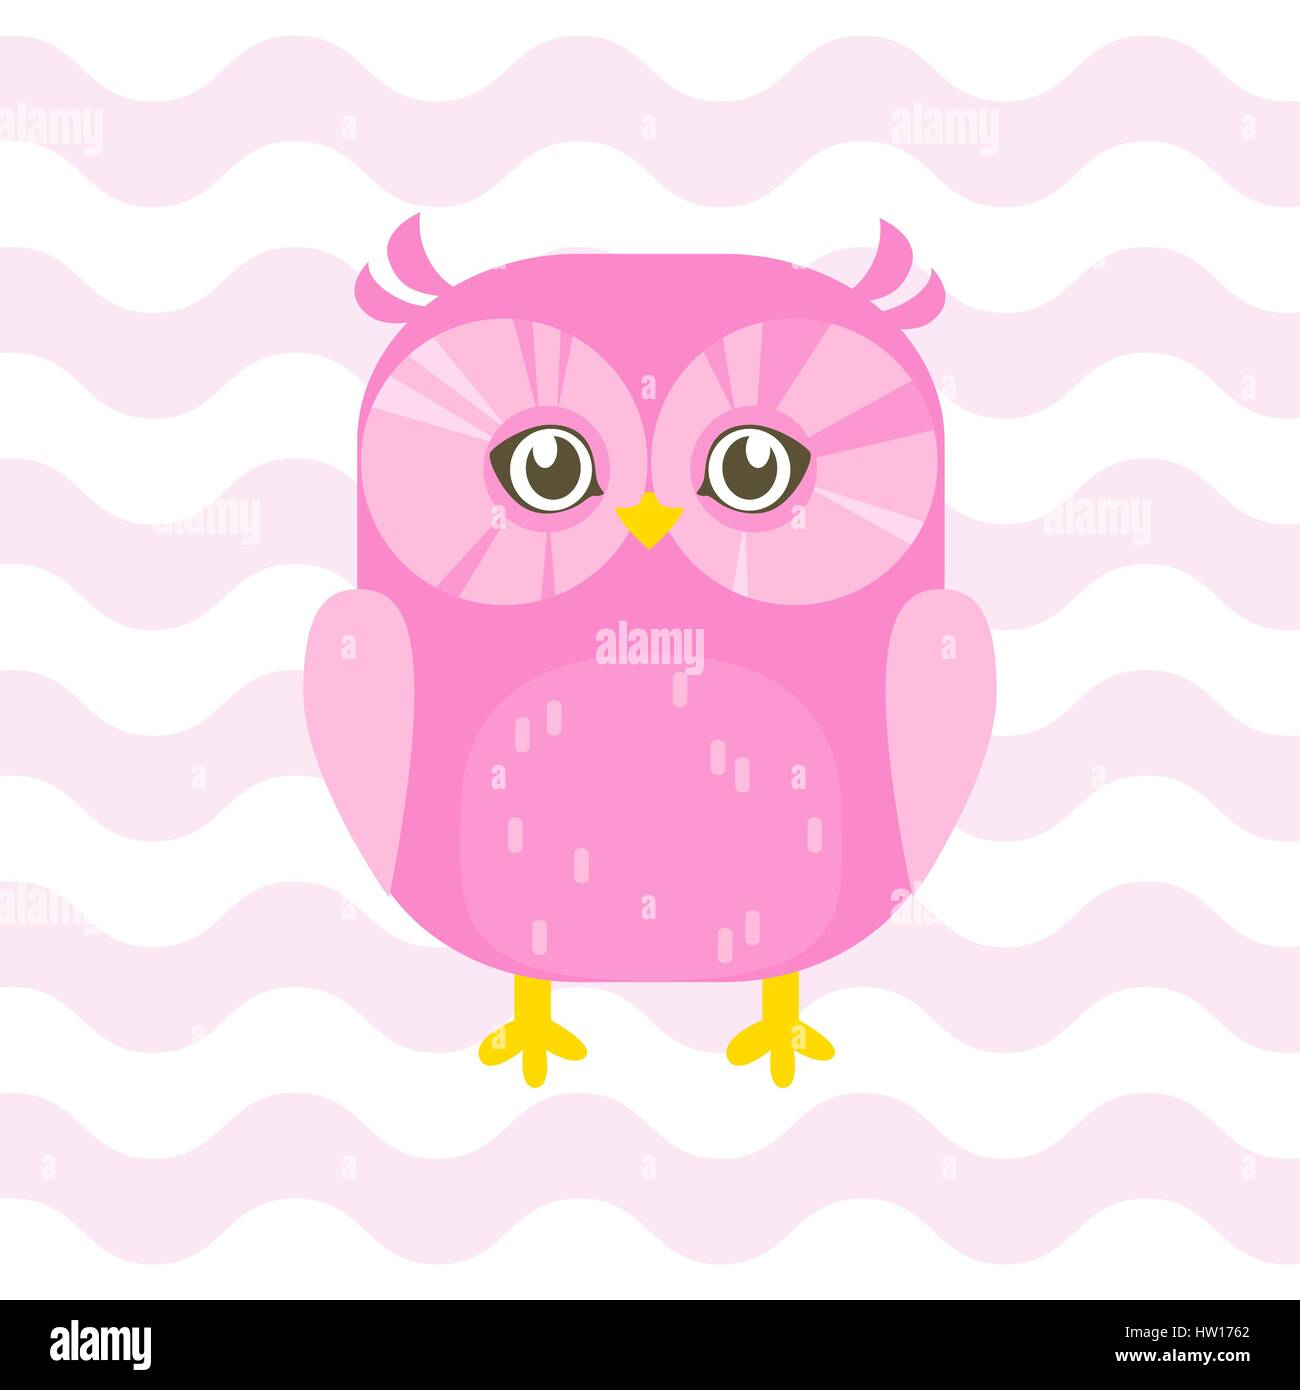 Baby shower illustration with cute pink baby owl on pink background ...